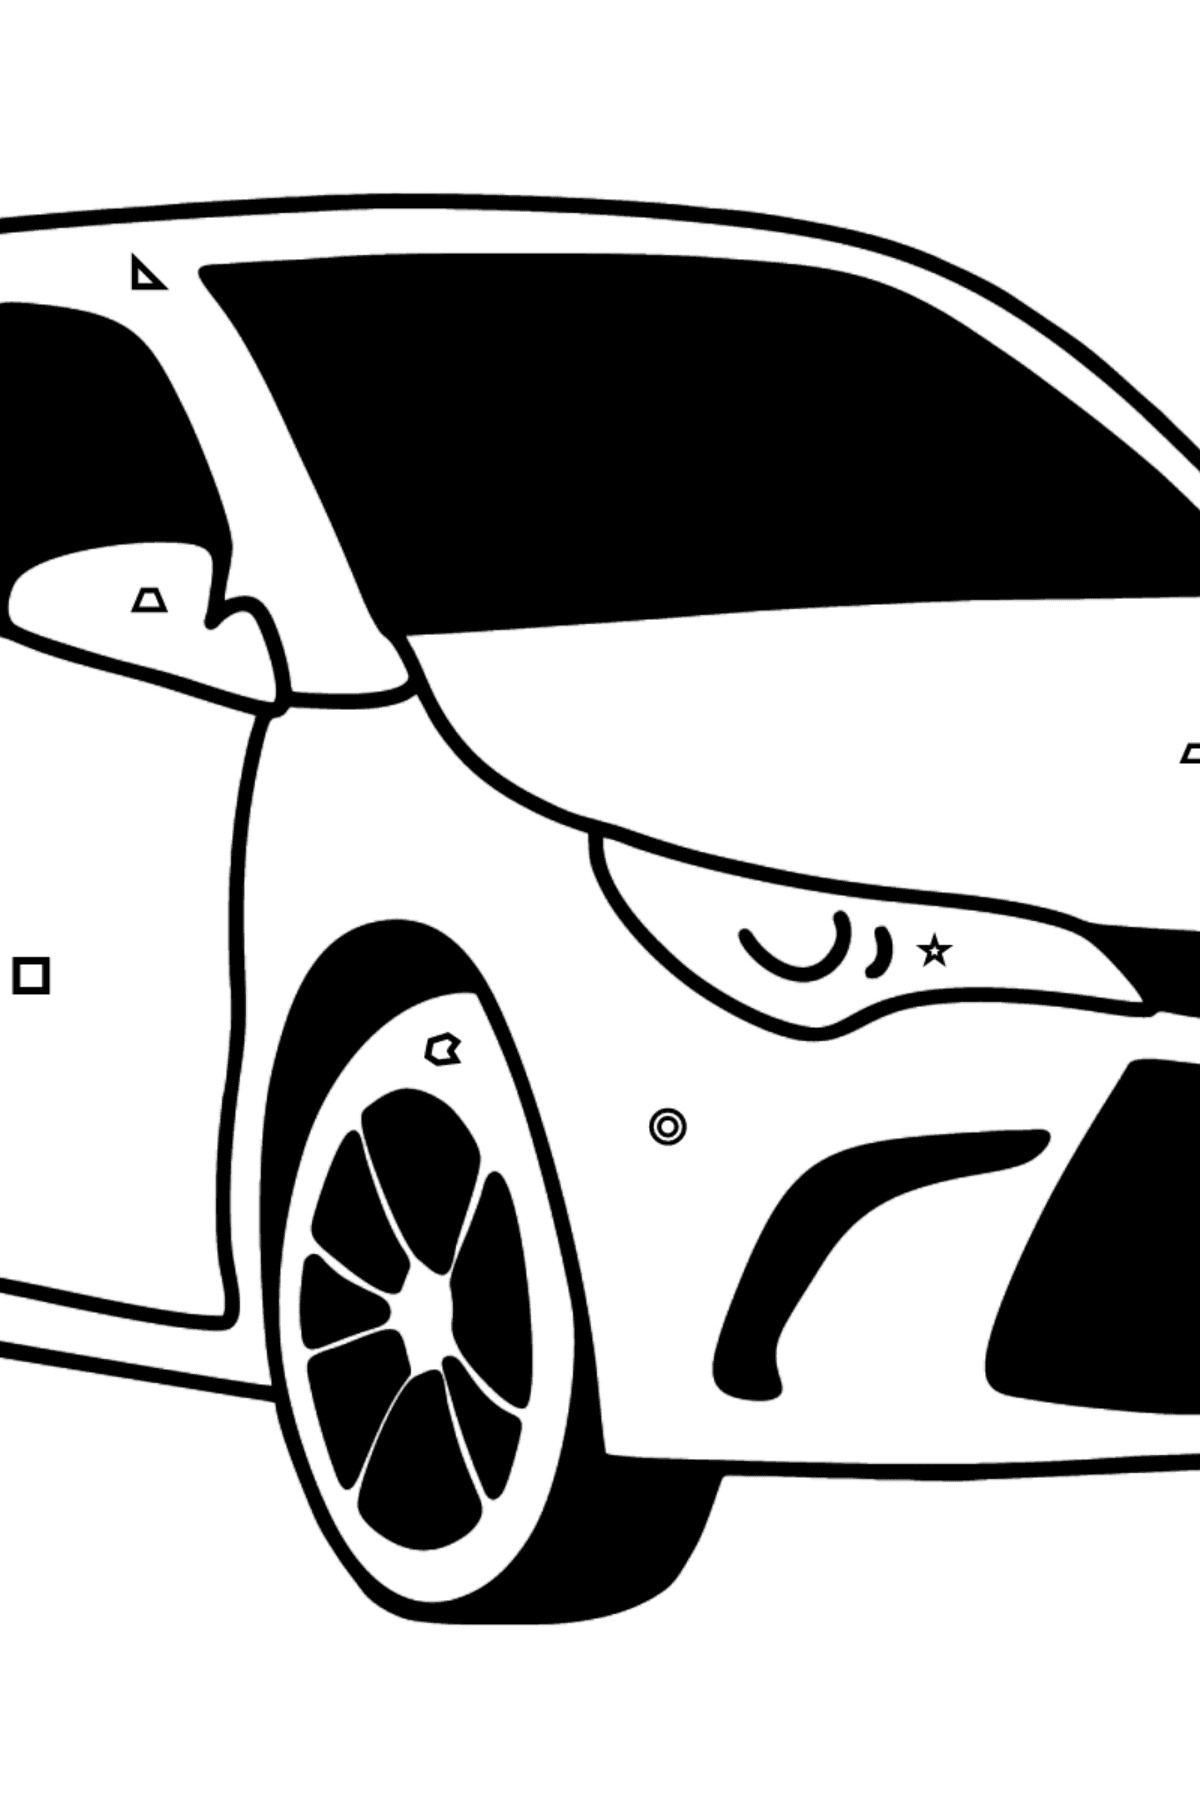 Toyota Camry coloring page - Coloring by Geometric Shapes for Kids